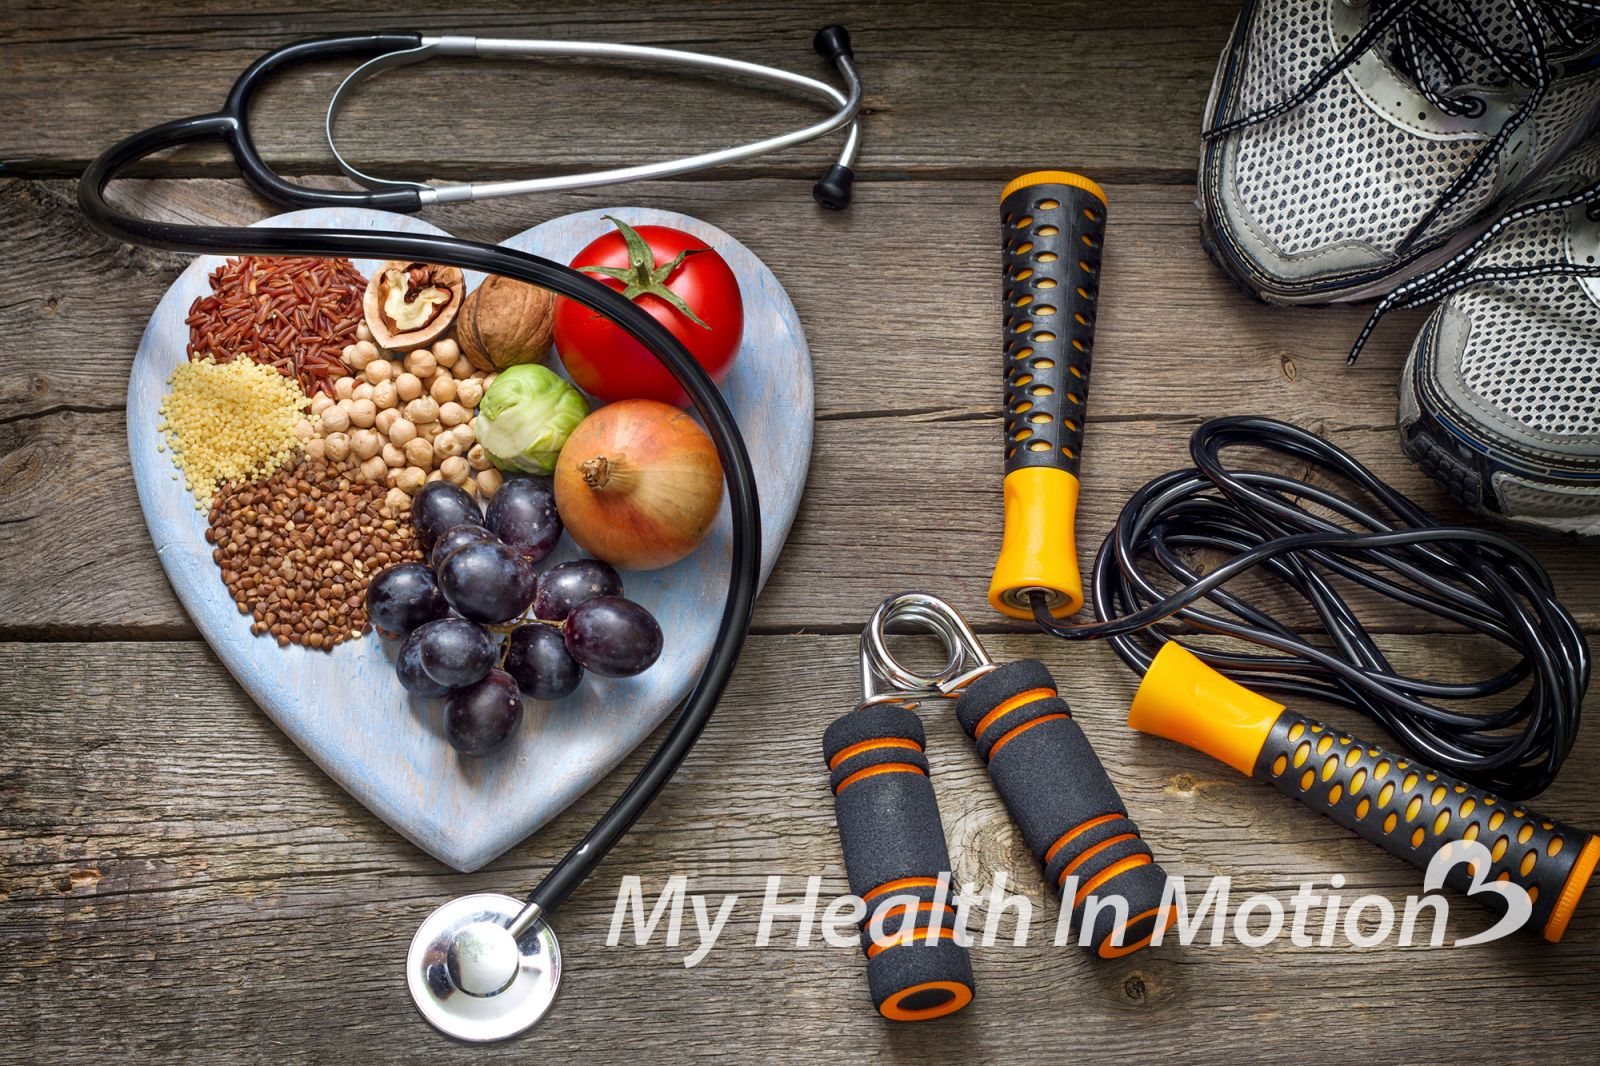 My Health In Motion Program